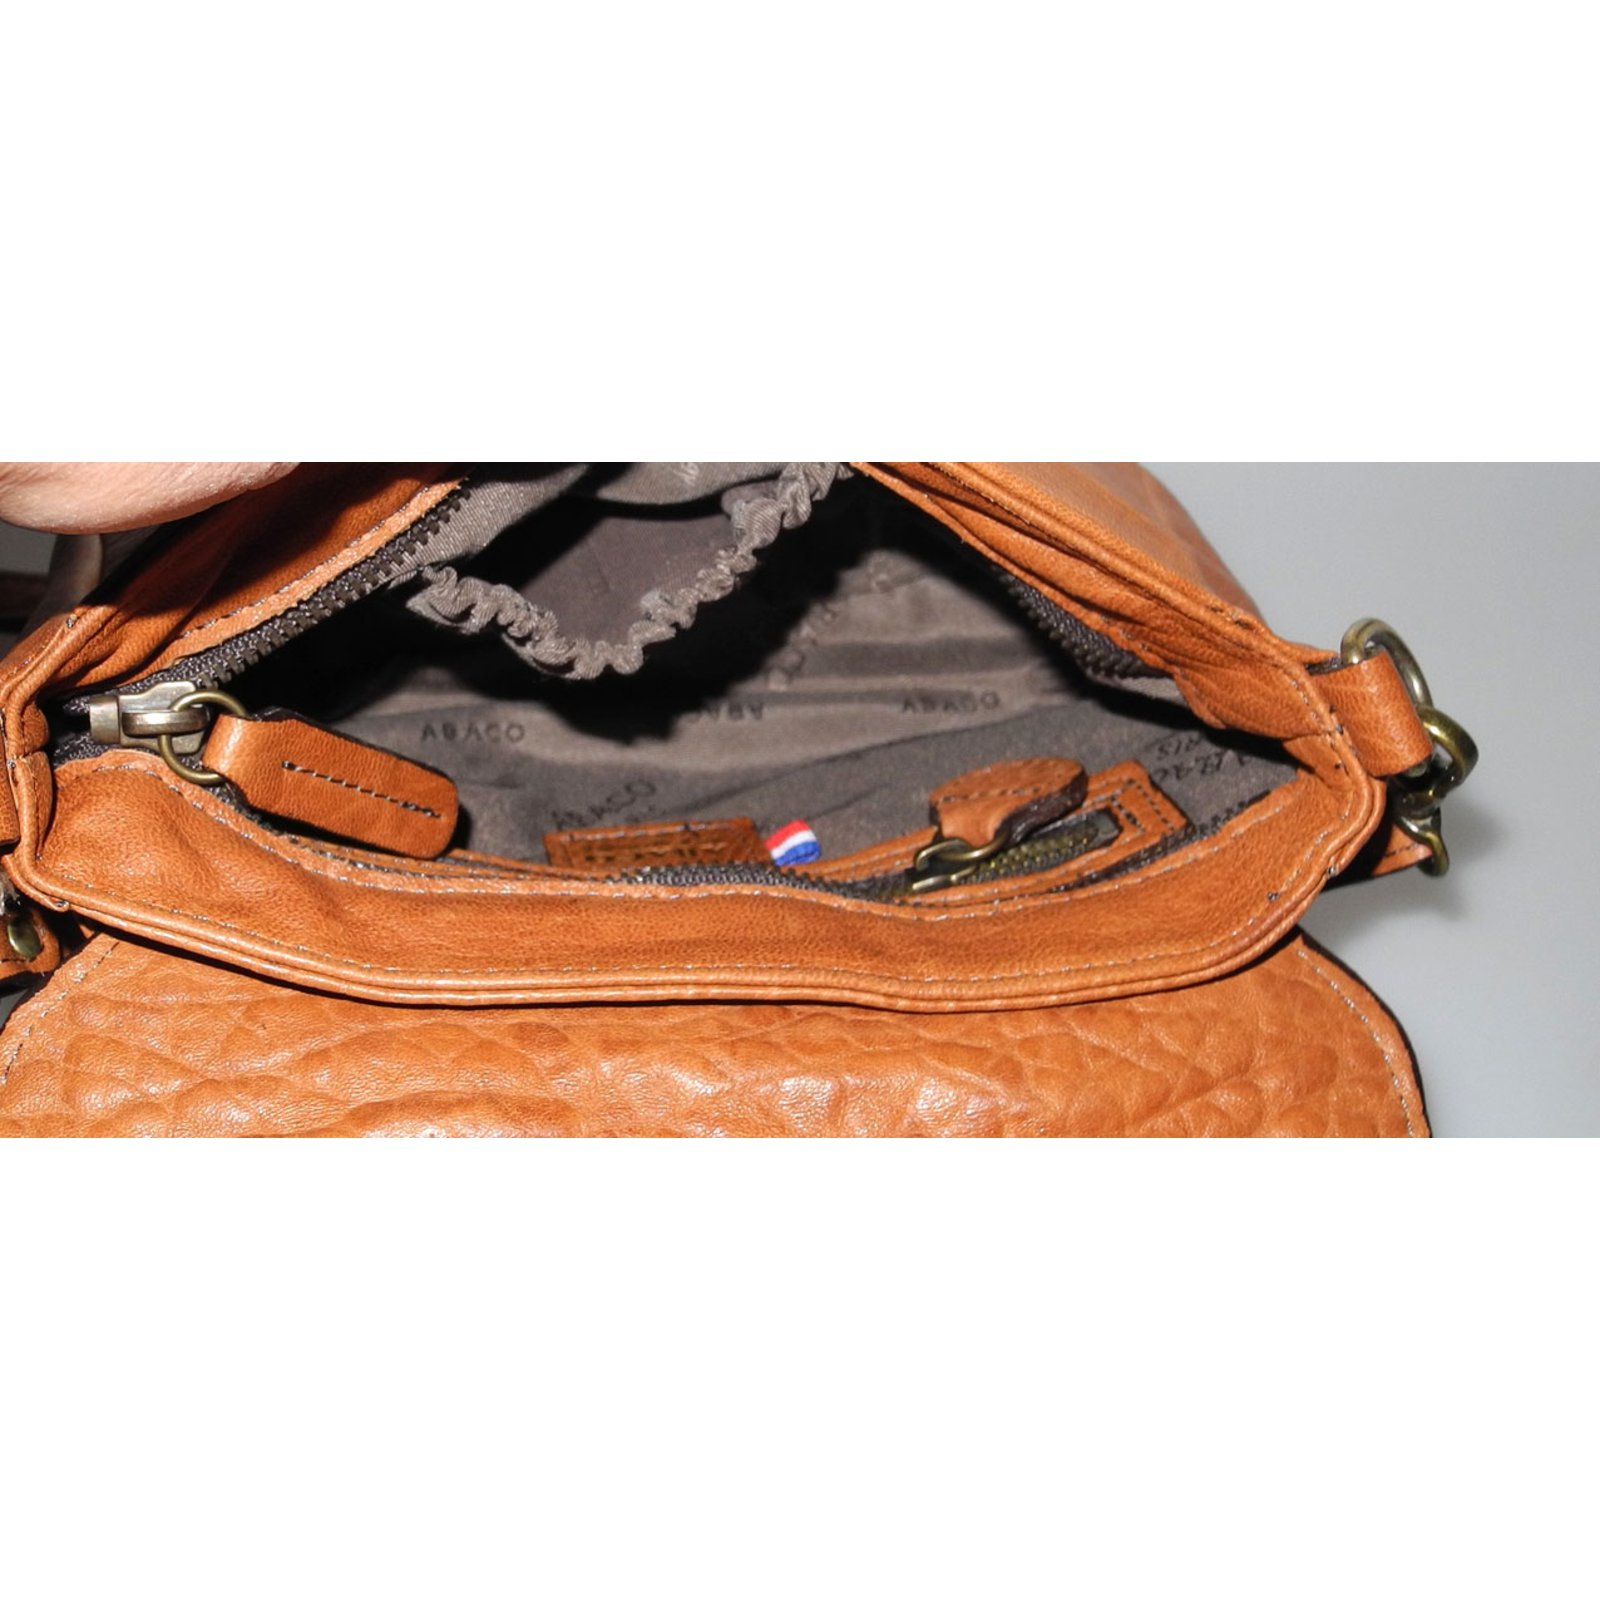 4303c4ad3715 Abaco model Gaby Java brand new camel leather! Handbags Leather Brown  ref.91427 - Joli Closet